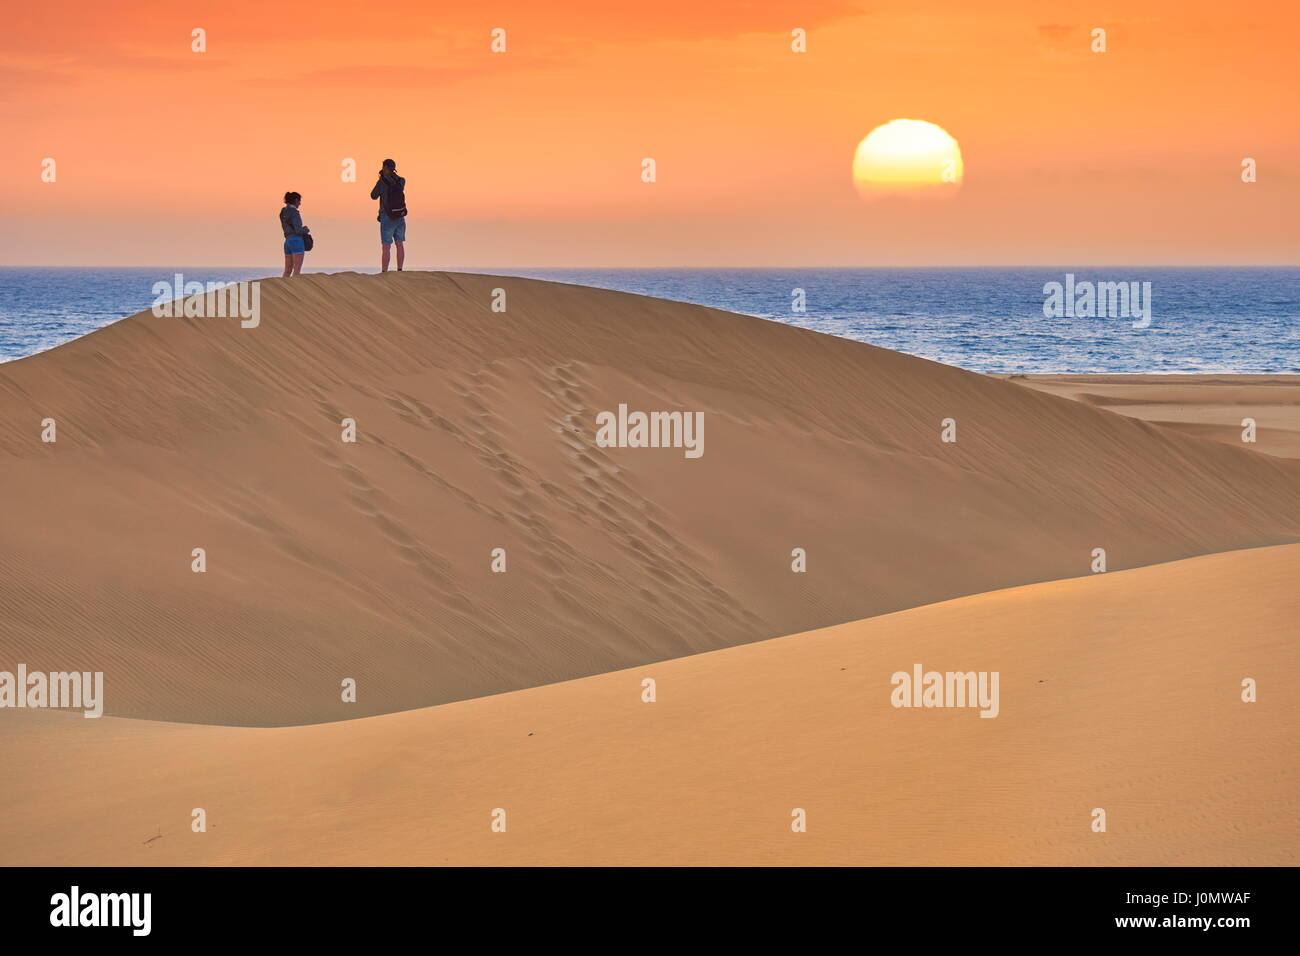 Gran Canaria, sunrise landscape at Maspalomas Sand Dunes, Canary Islands, Spain - Stock Image